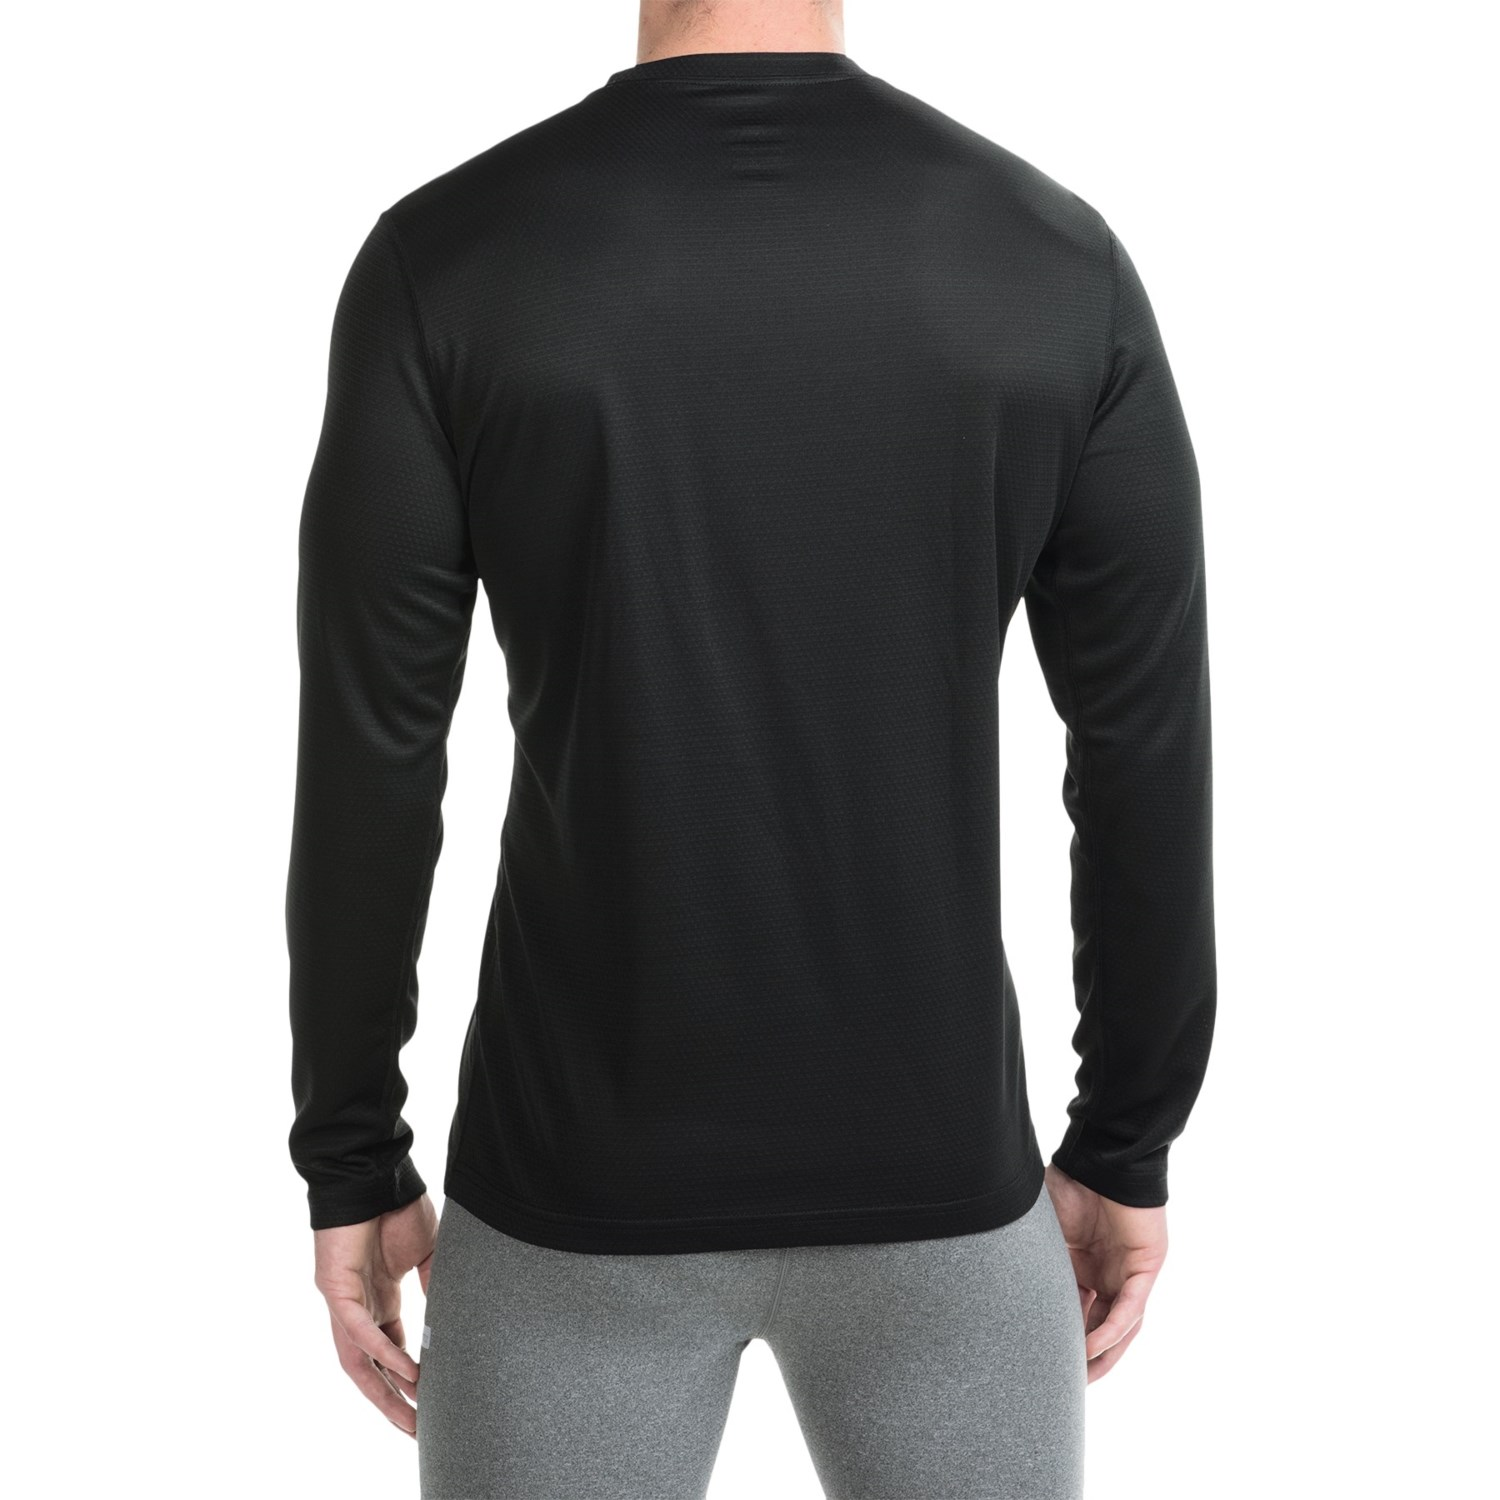 Terramar Helix T-Shirt (For Men) - Save 40%